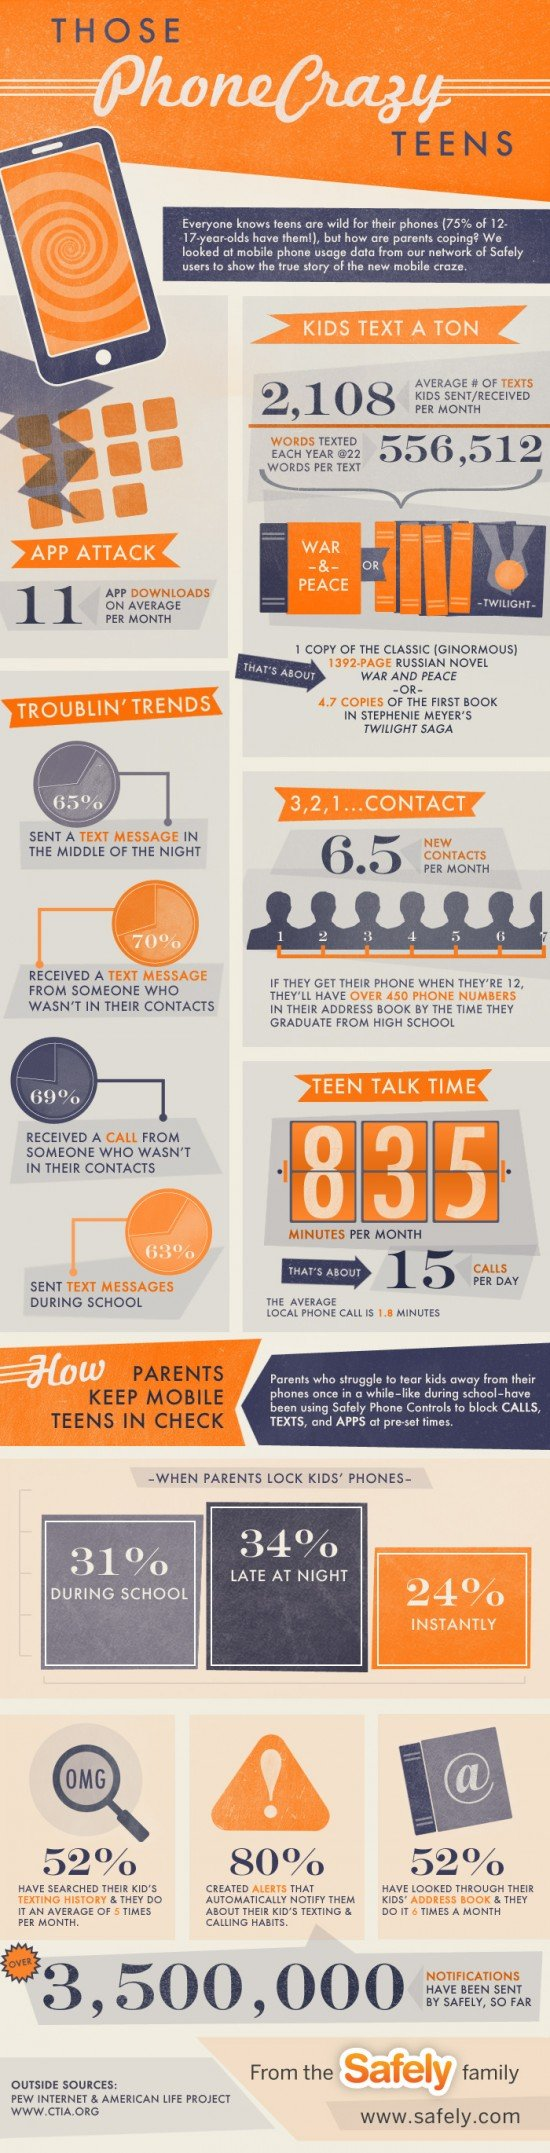 Those Phone Crazy Teens Infographic